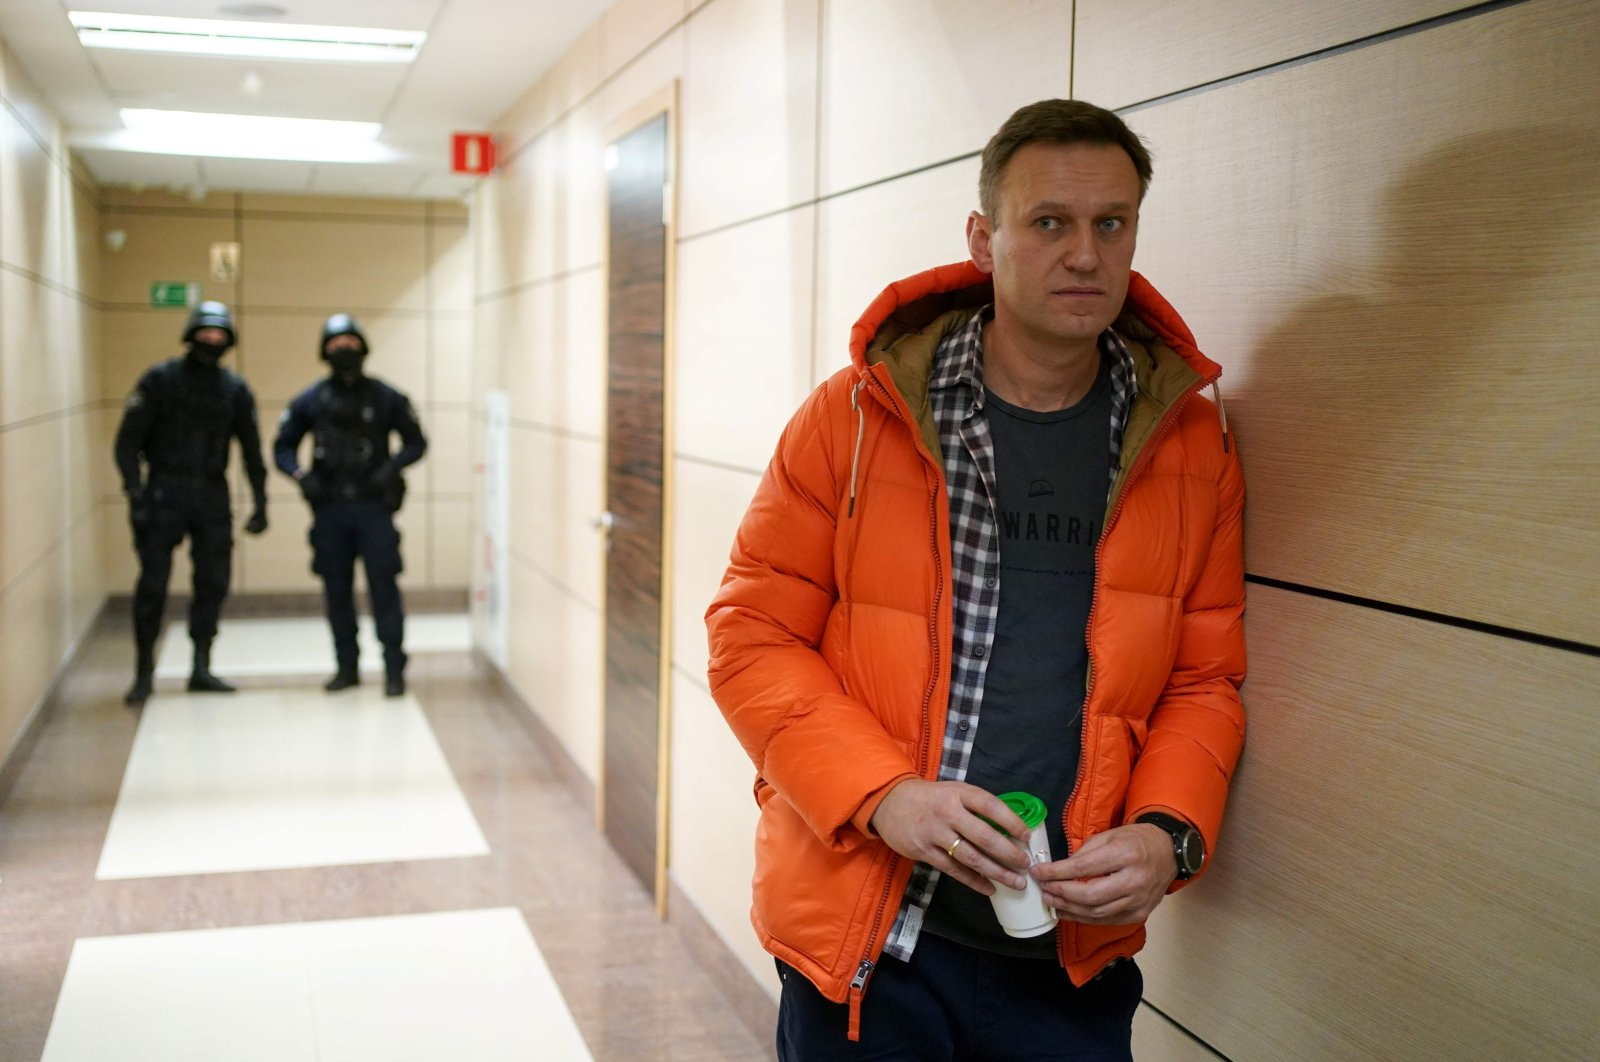 Russian opposition leader Alexei Navalny stands near law enforcement agents in a hallway of a business center, which houses the office of his Anti-Corruption Foundation (FBK), in Moscow. (AFP Photo)